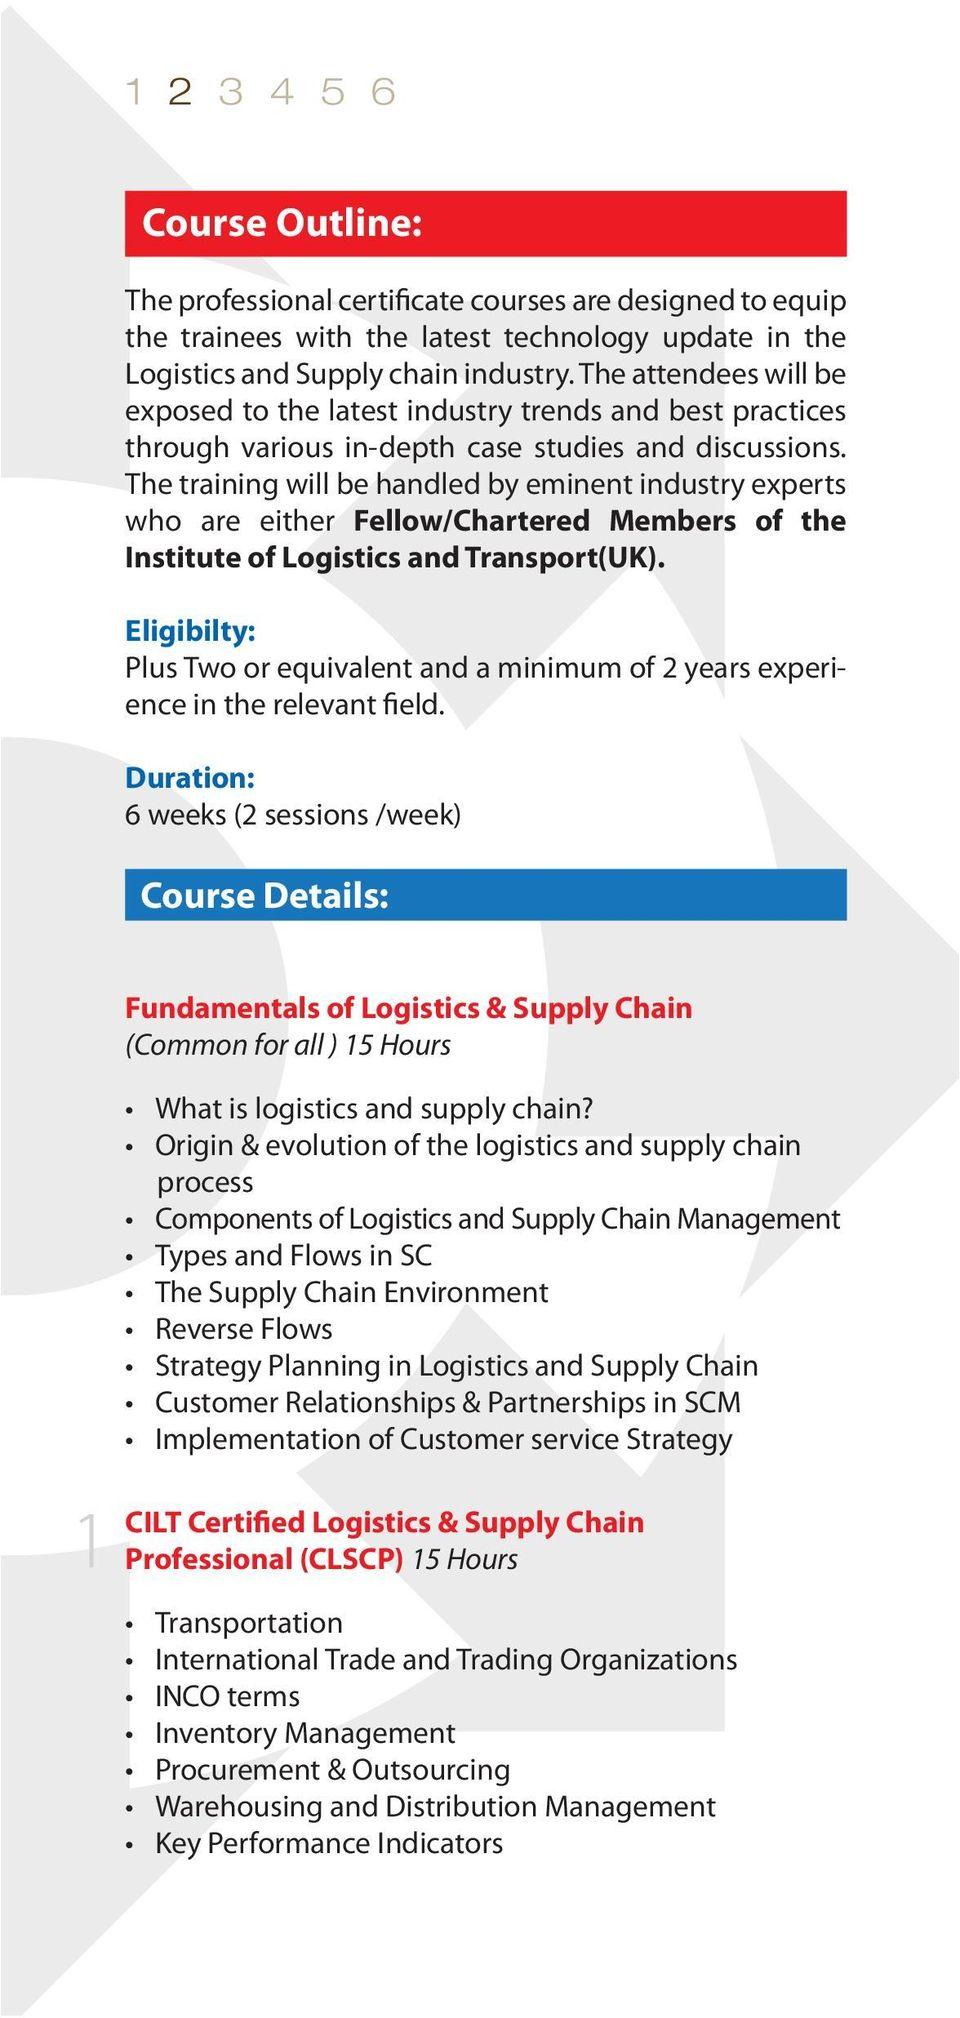 The training will be handled by eminent industry experts who are either Fellow/Chartered Members of the Institute of Logistics and Transport(UK).